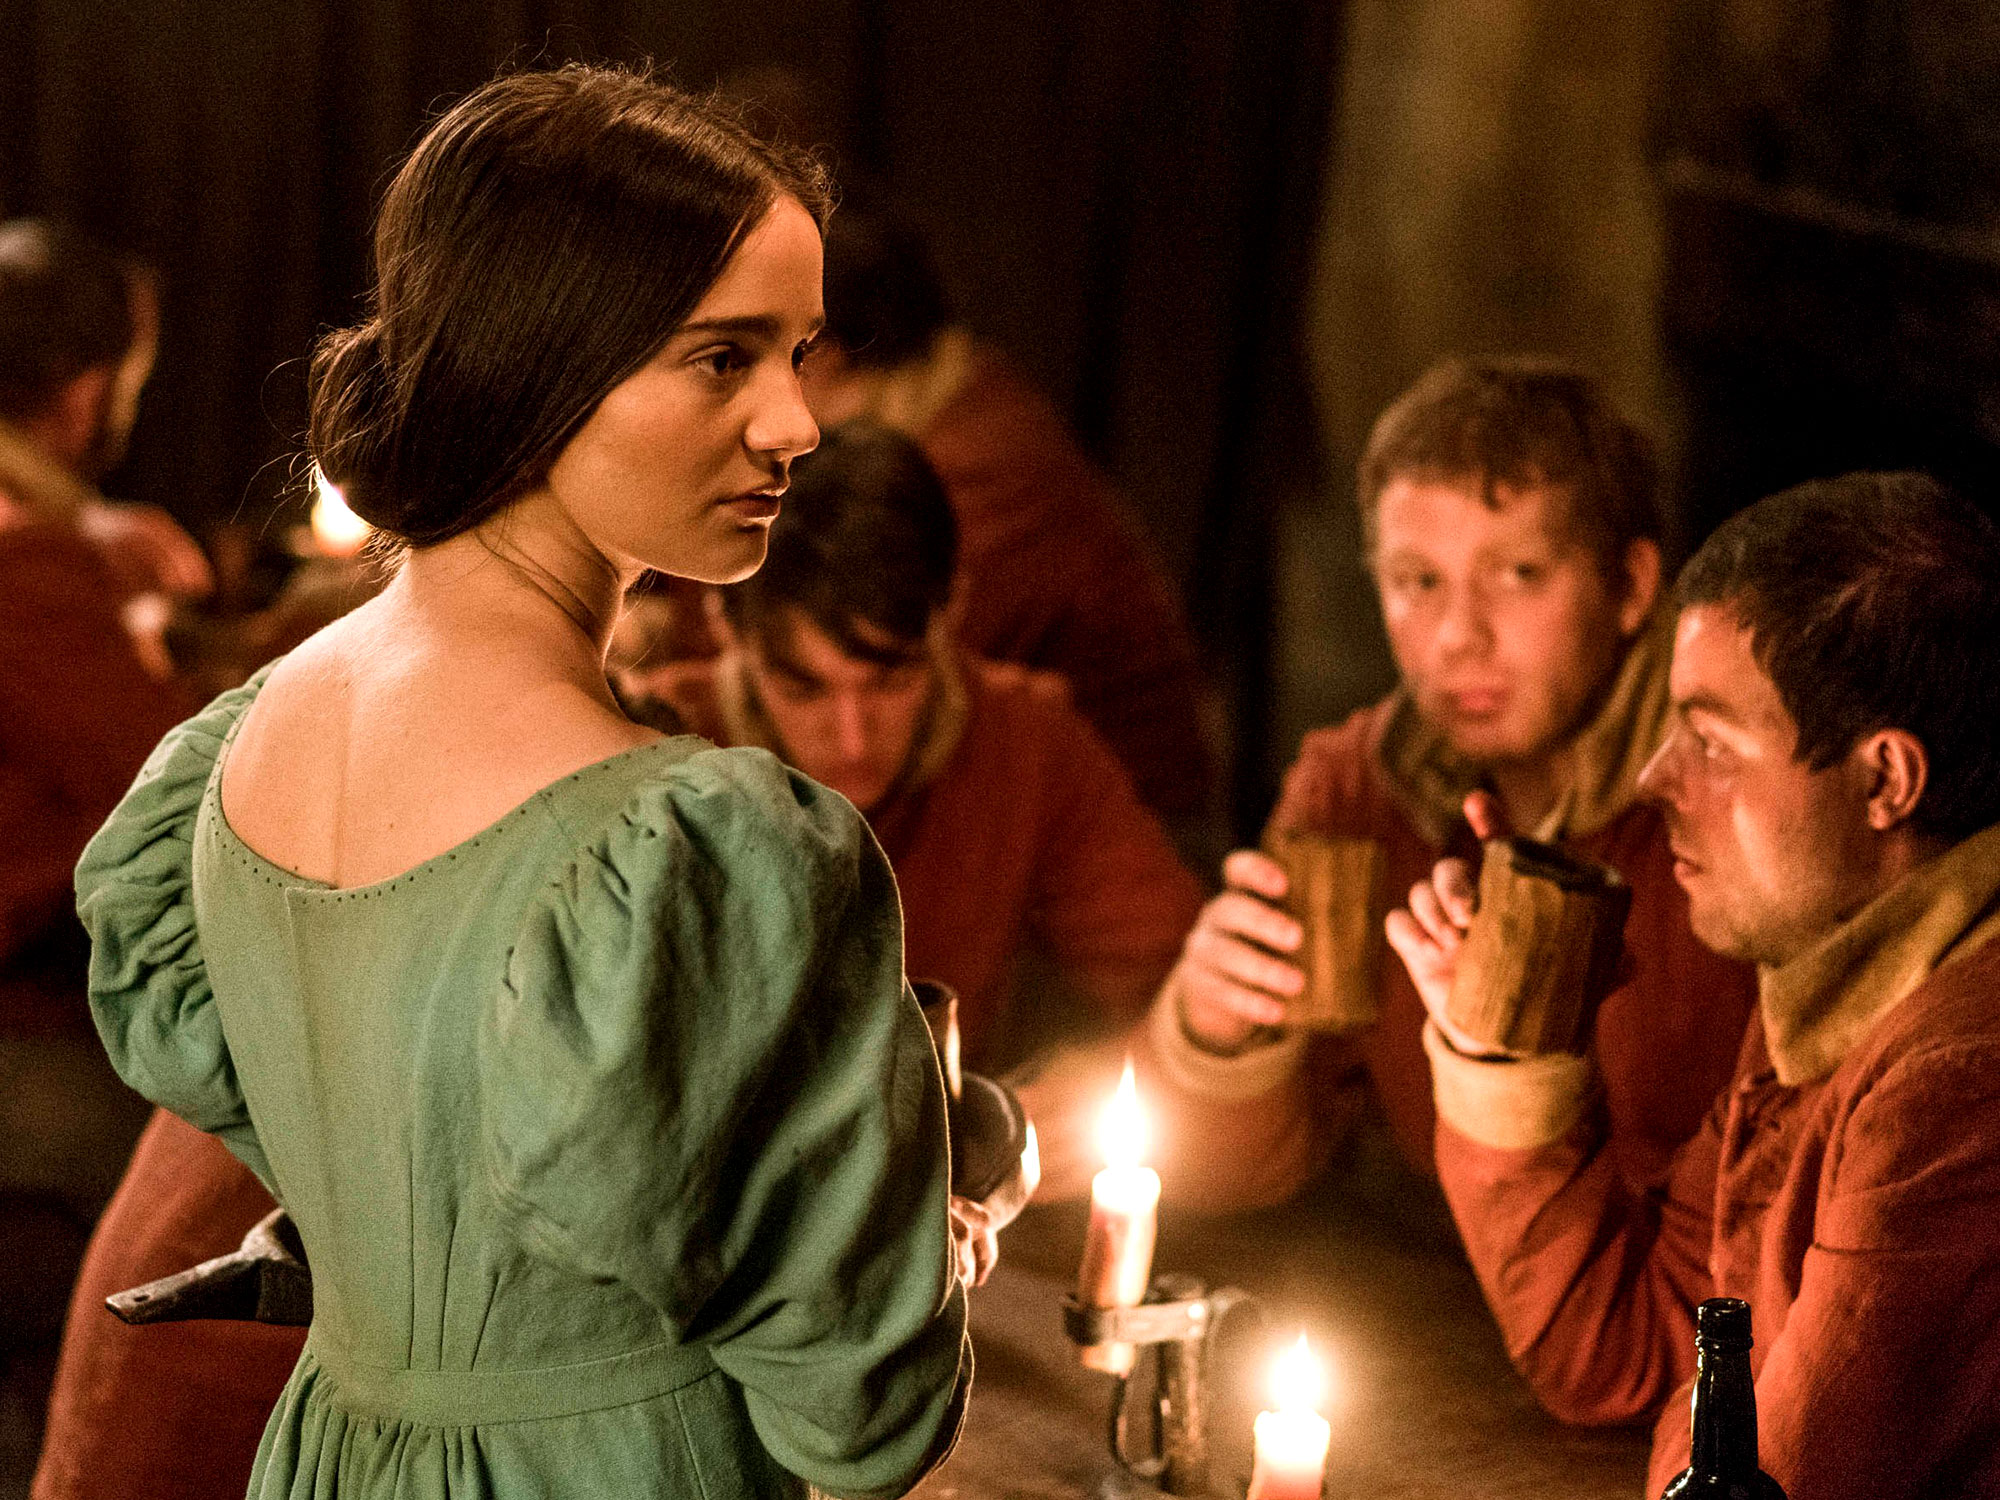 Aisling Franciosi in The Nightingale (2018)